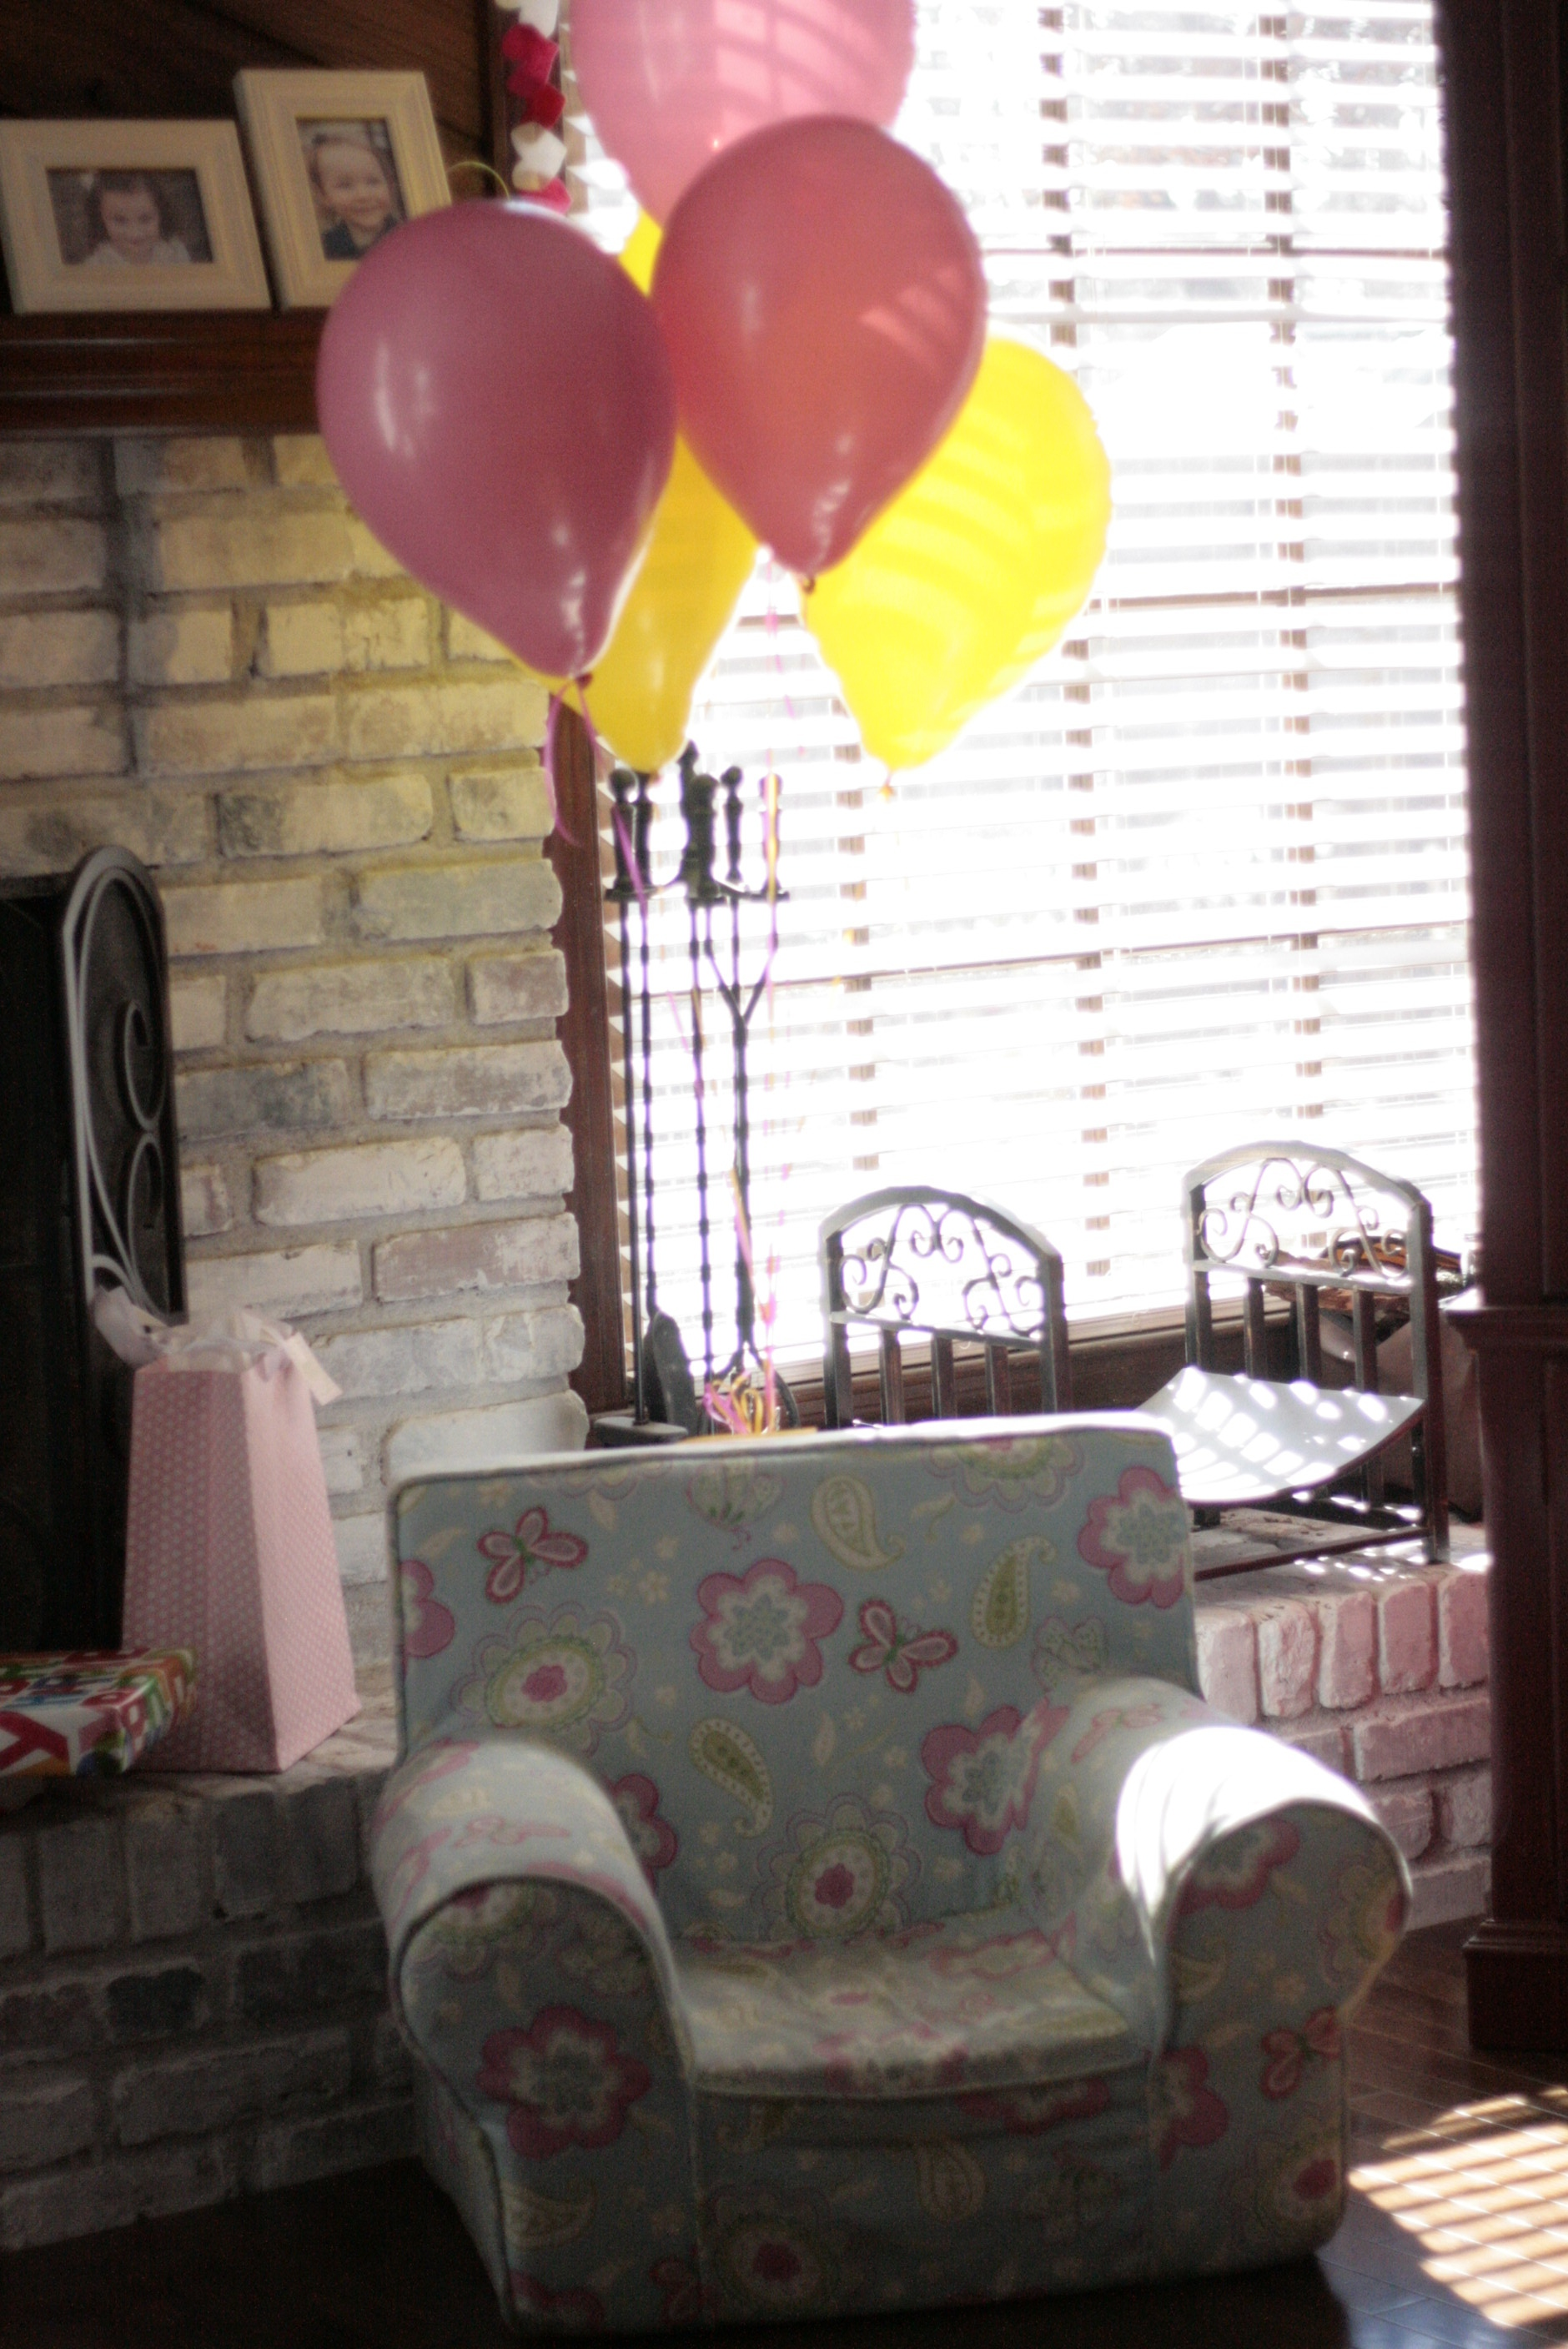 Of all the decor, I think these balloons made her the happiest!